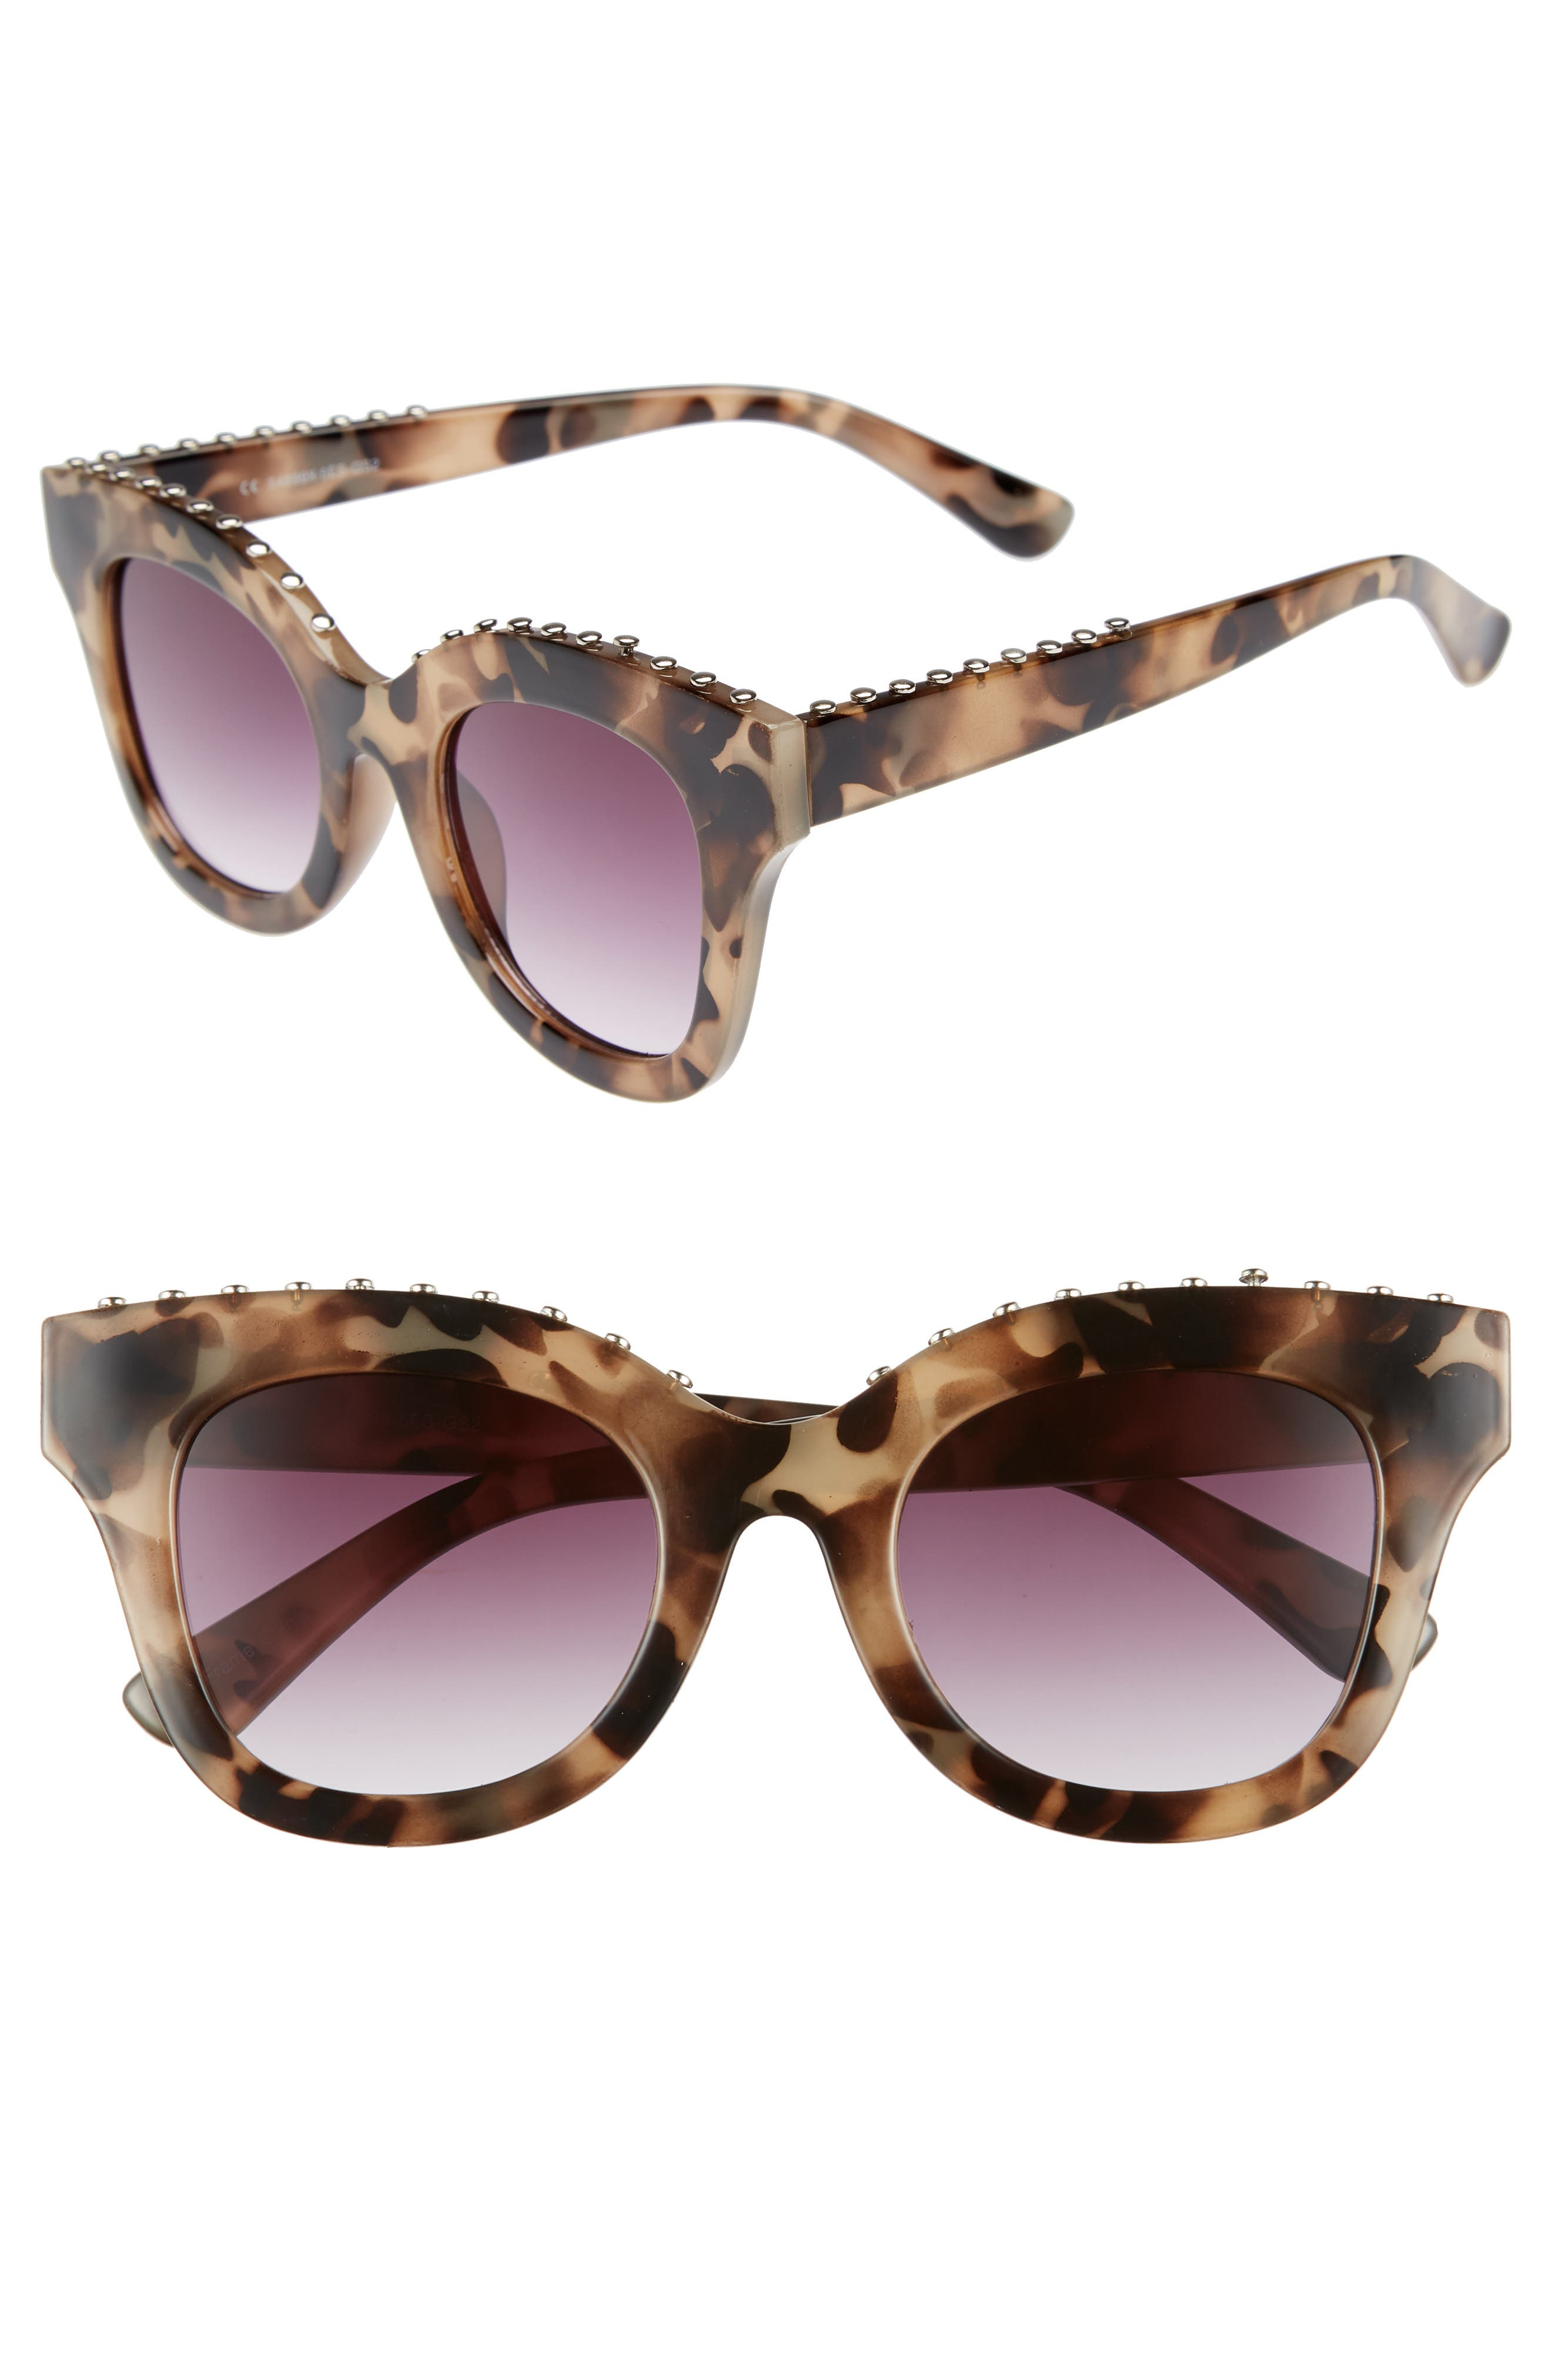 48mm Studded Sunglasses,                         Main,                         color, Tort/ Silver